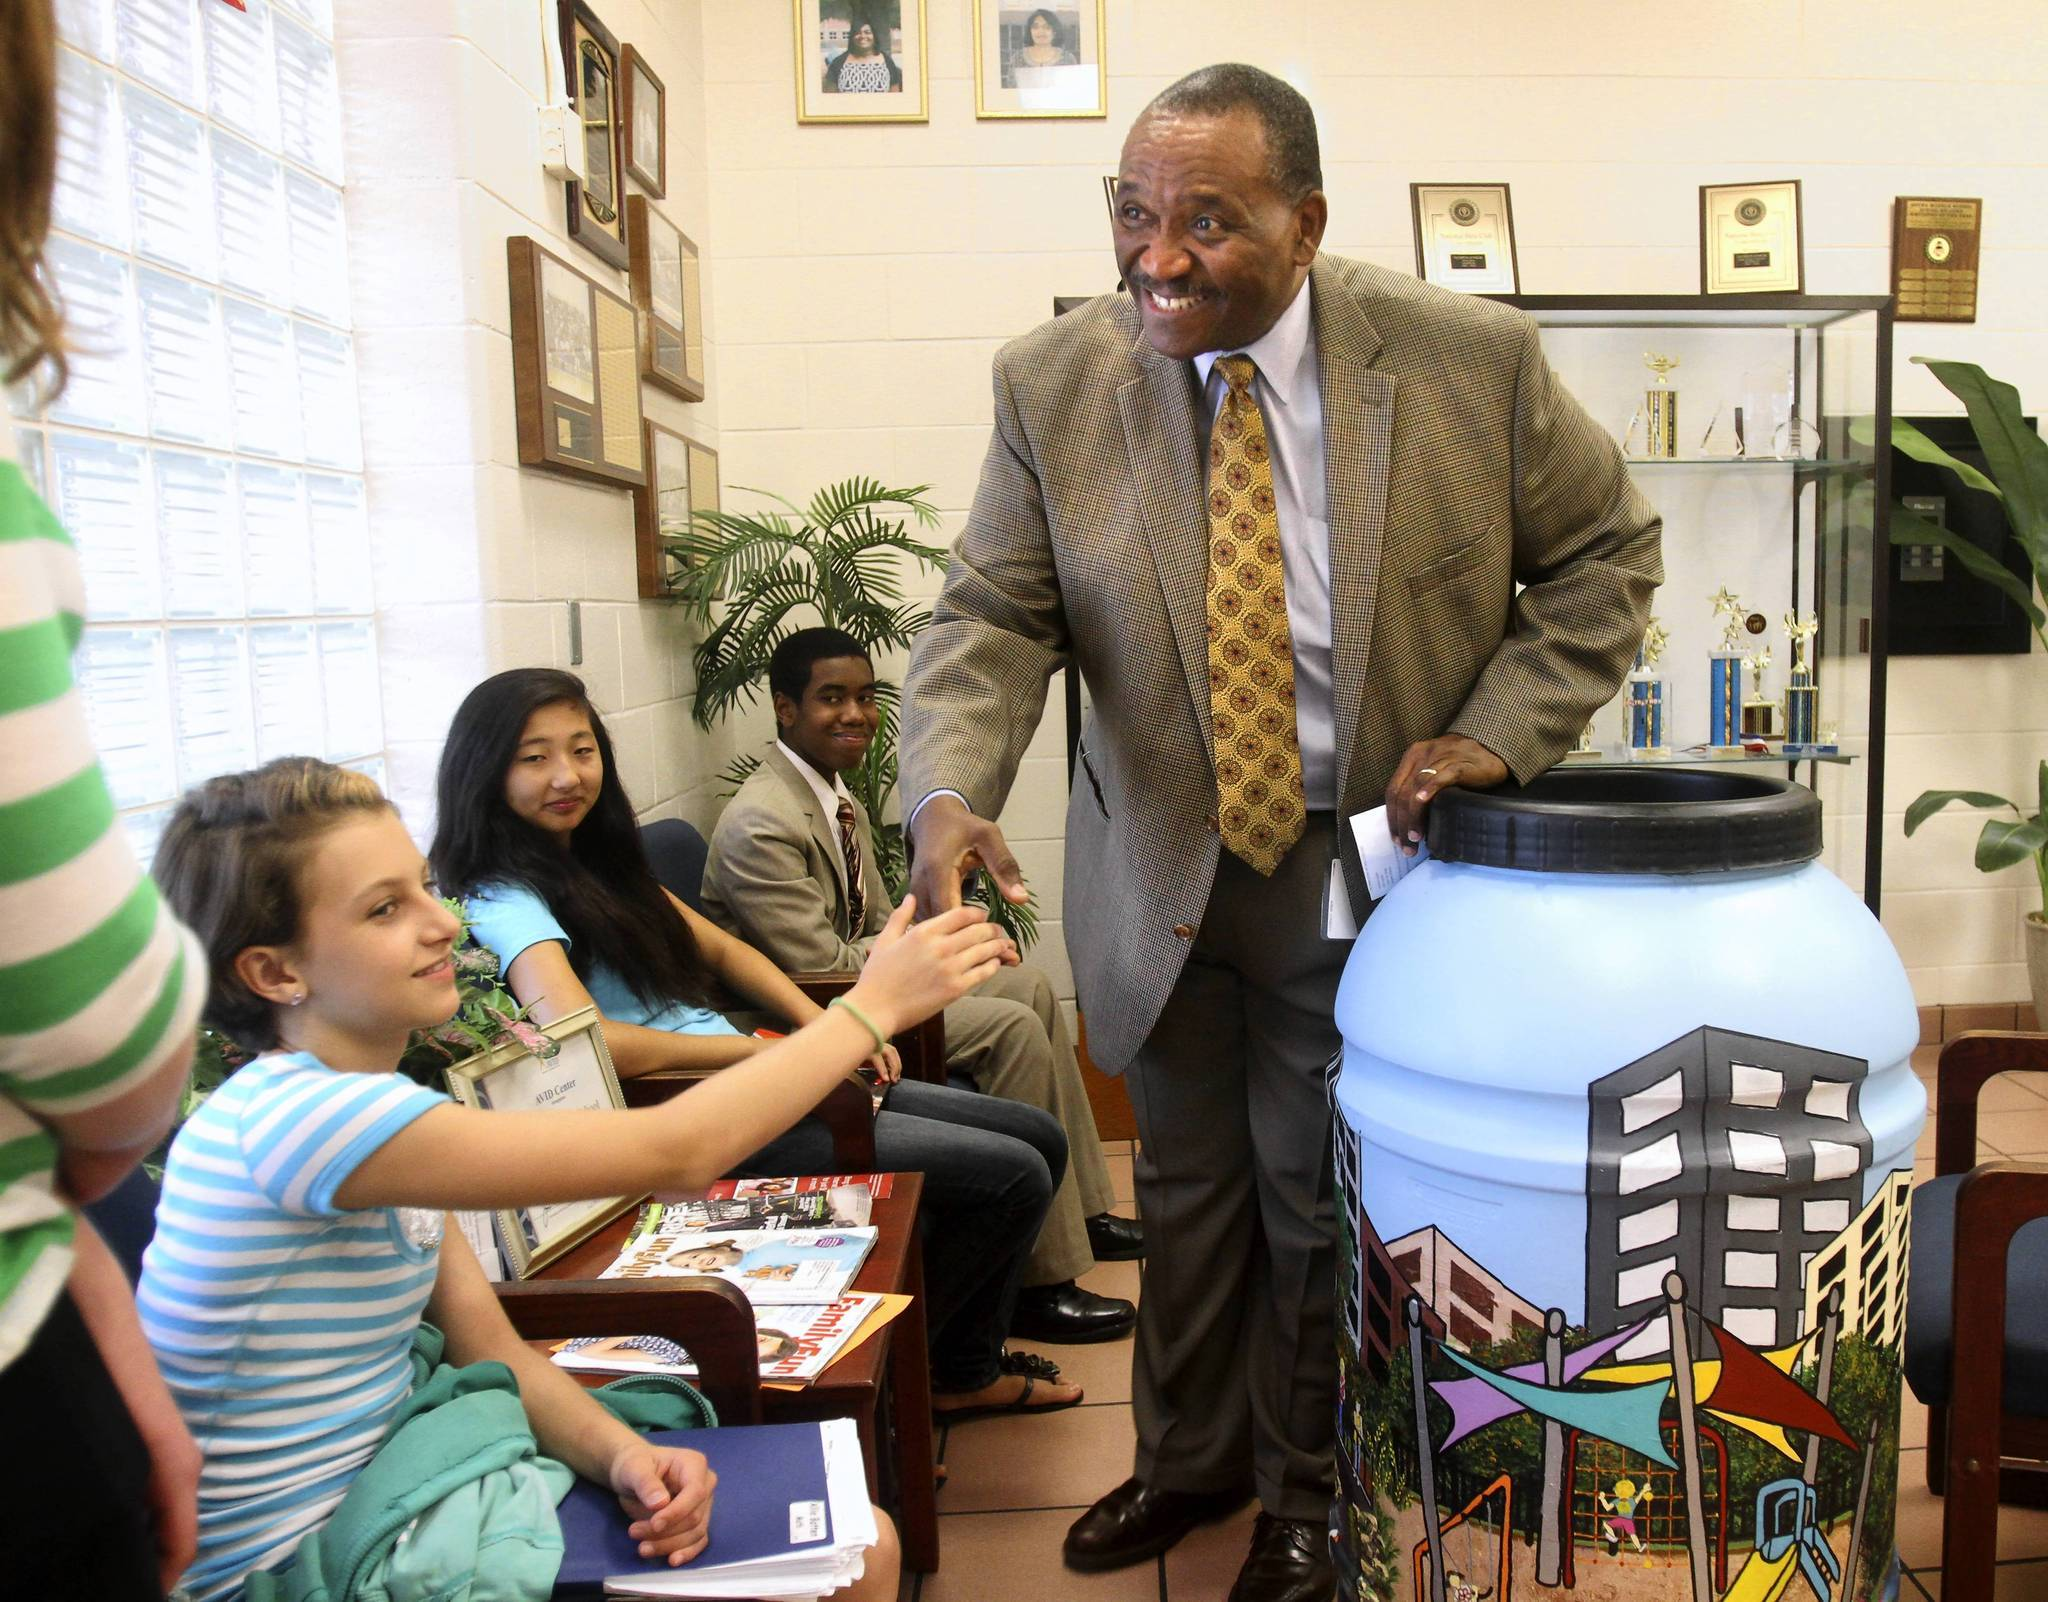 Orange County schools Superintendent Ron Blocker talks to Gotha Middle School students about a rain barrel art project they presented to him, in Gotha, Thursday, June 7, 2012. It was Blocker&#039;s last day as superintendent after 12 years on the job. Students are, from left, Danielle Ibrahim, Allie Batten, Chloe Cal and Nathaniel Calixte.